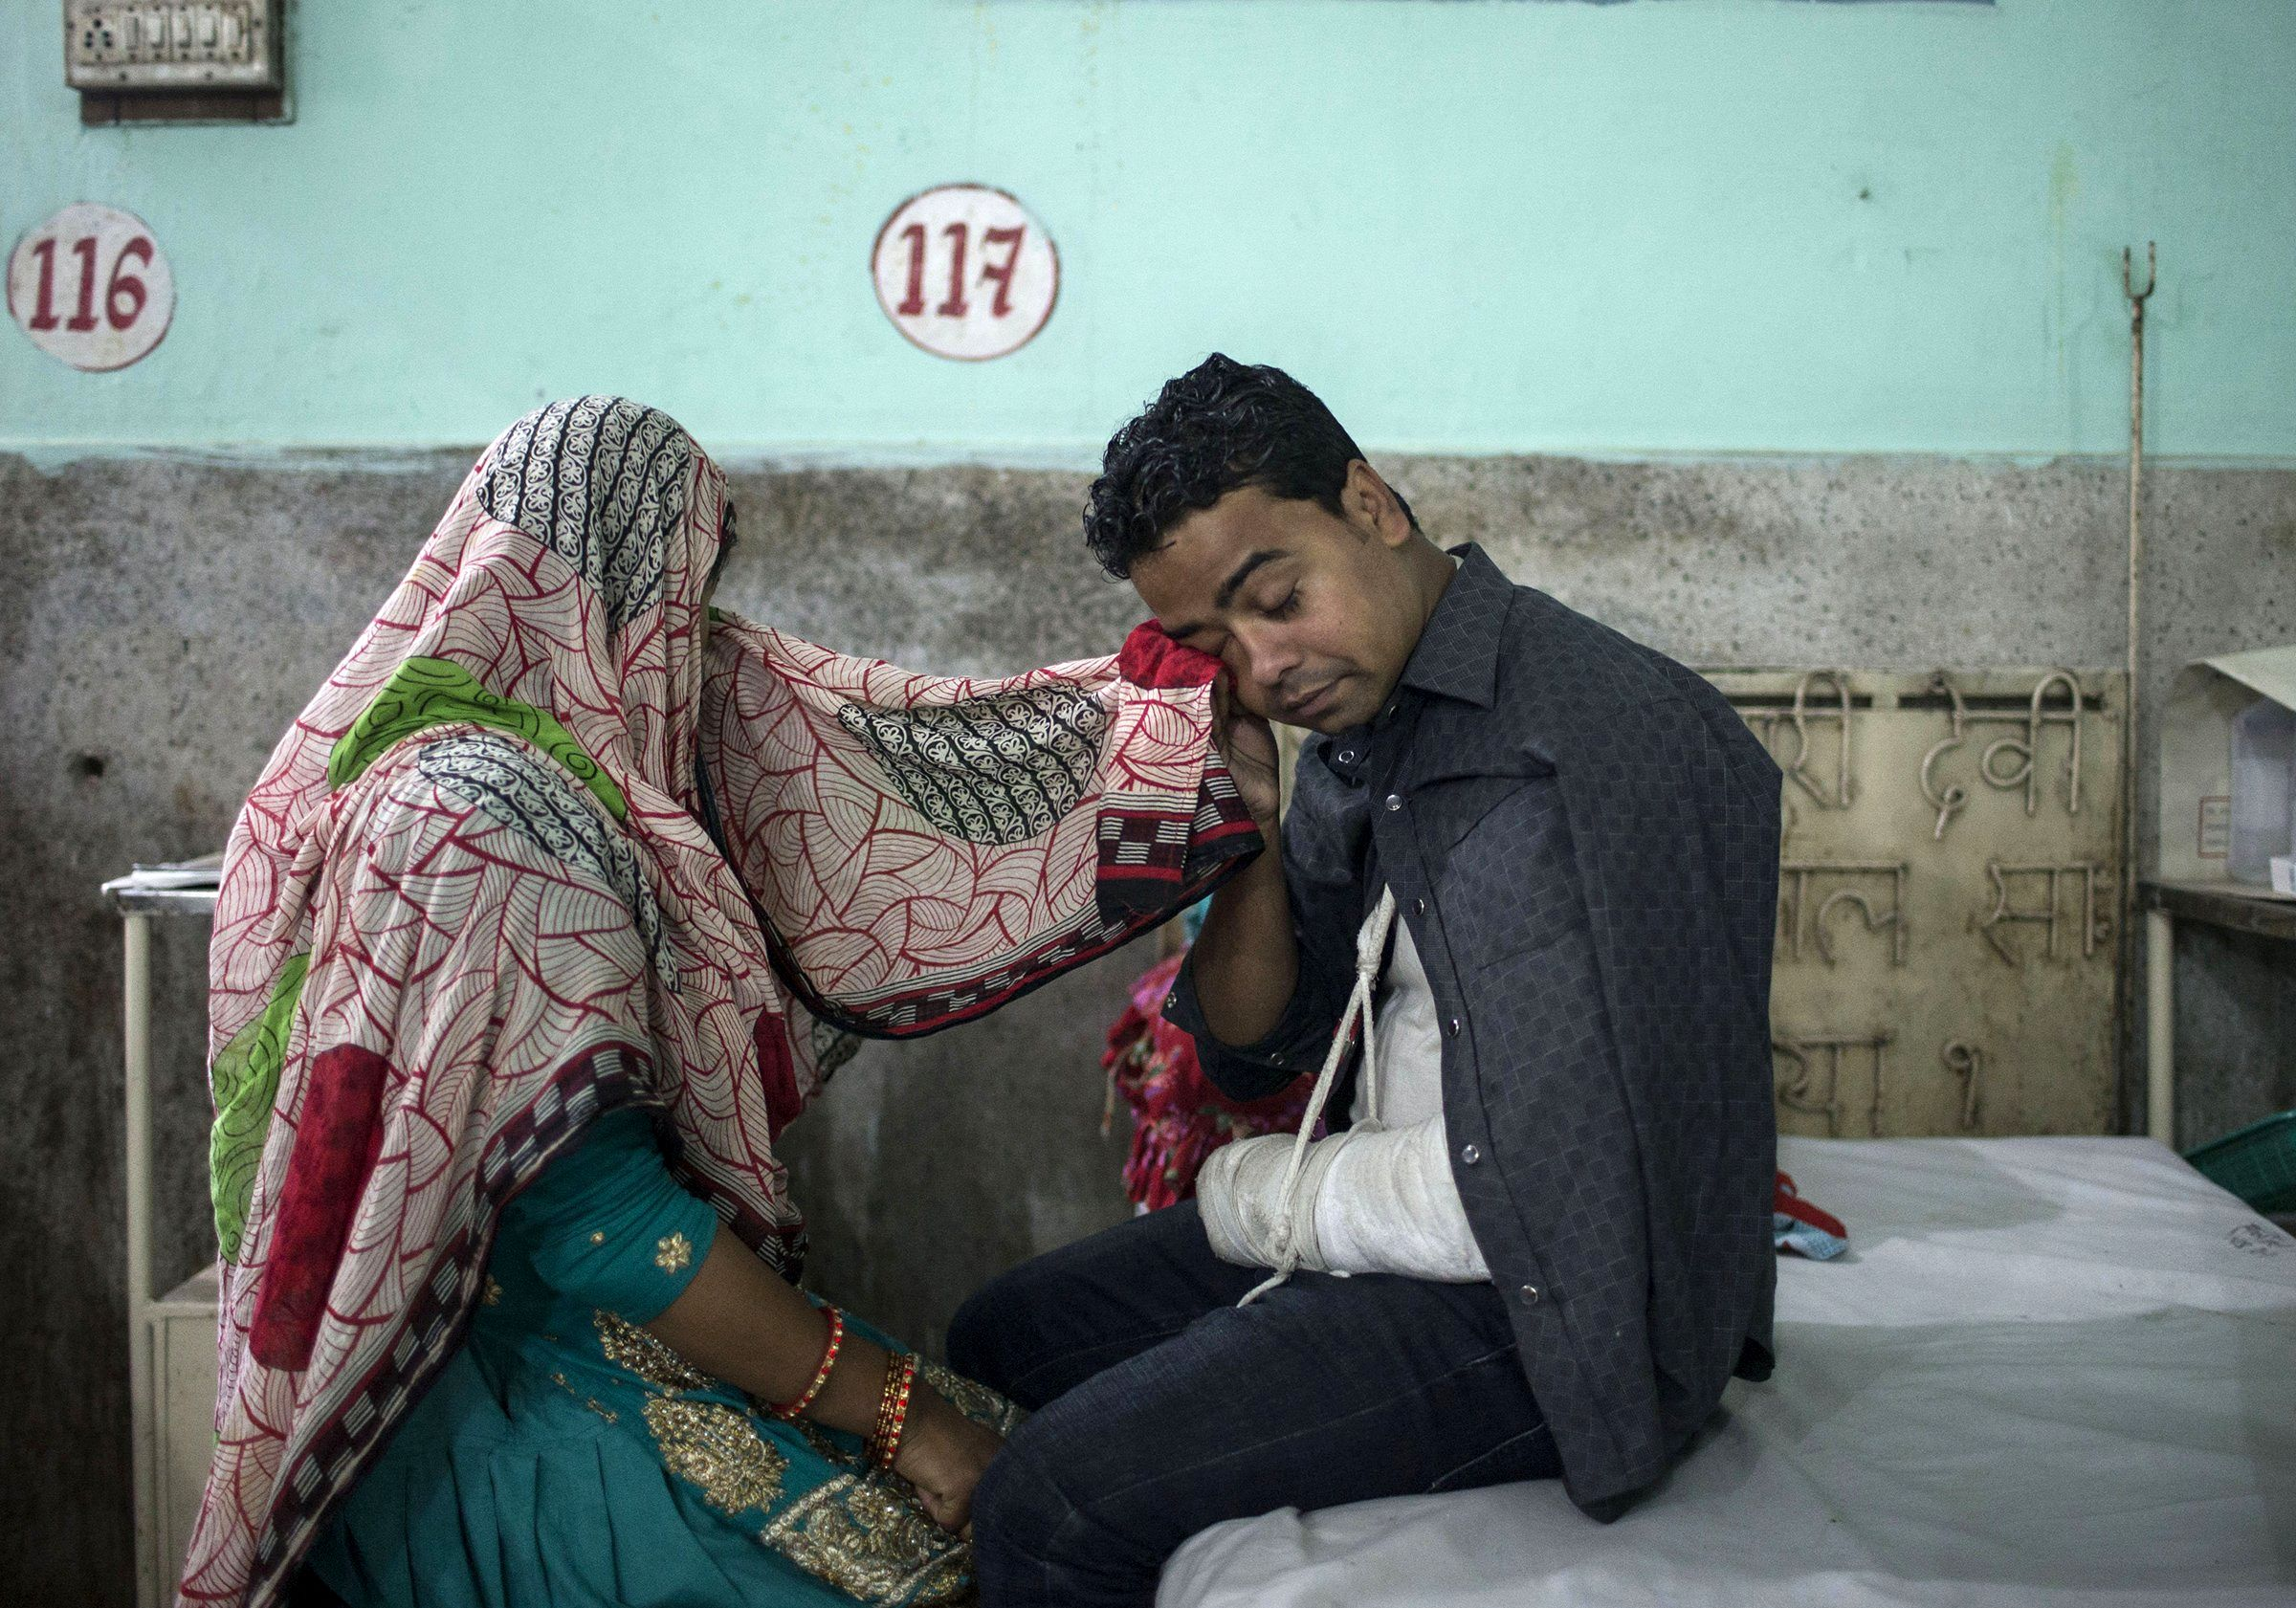 Storm survivors receive medical attention at Narayani Sub-Regional Hospital in Parsa district, Nepal, on April 2. More than two dozen people were killed and hundreds more were injured during a large storm that swept through the area.